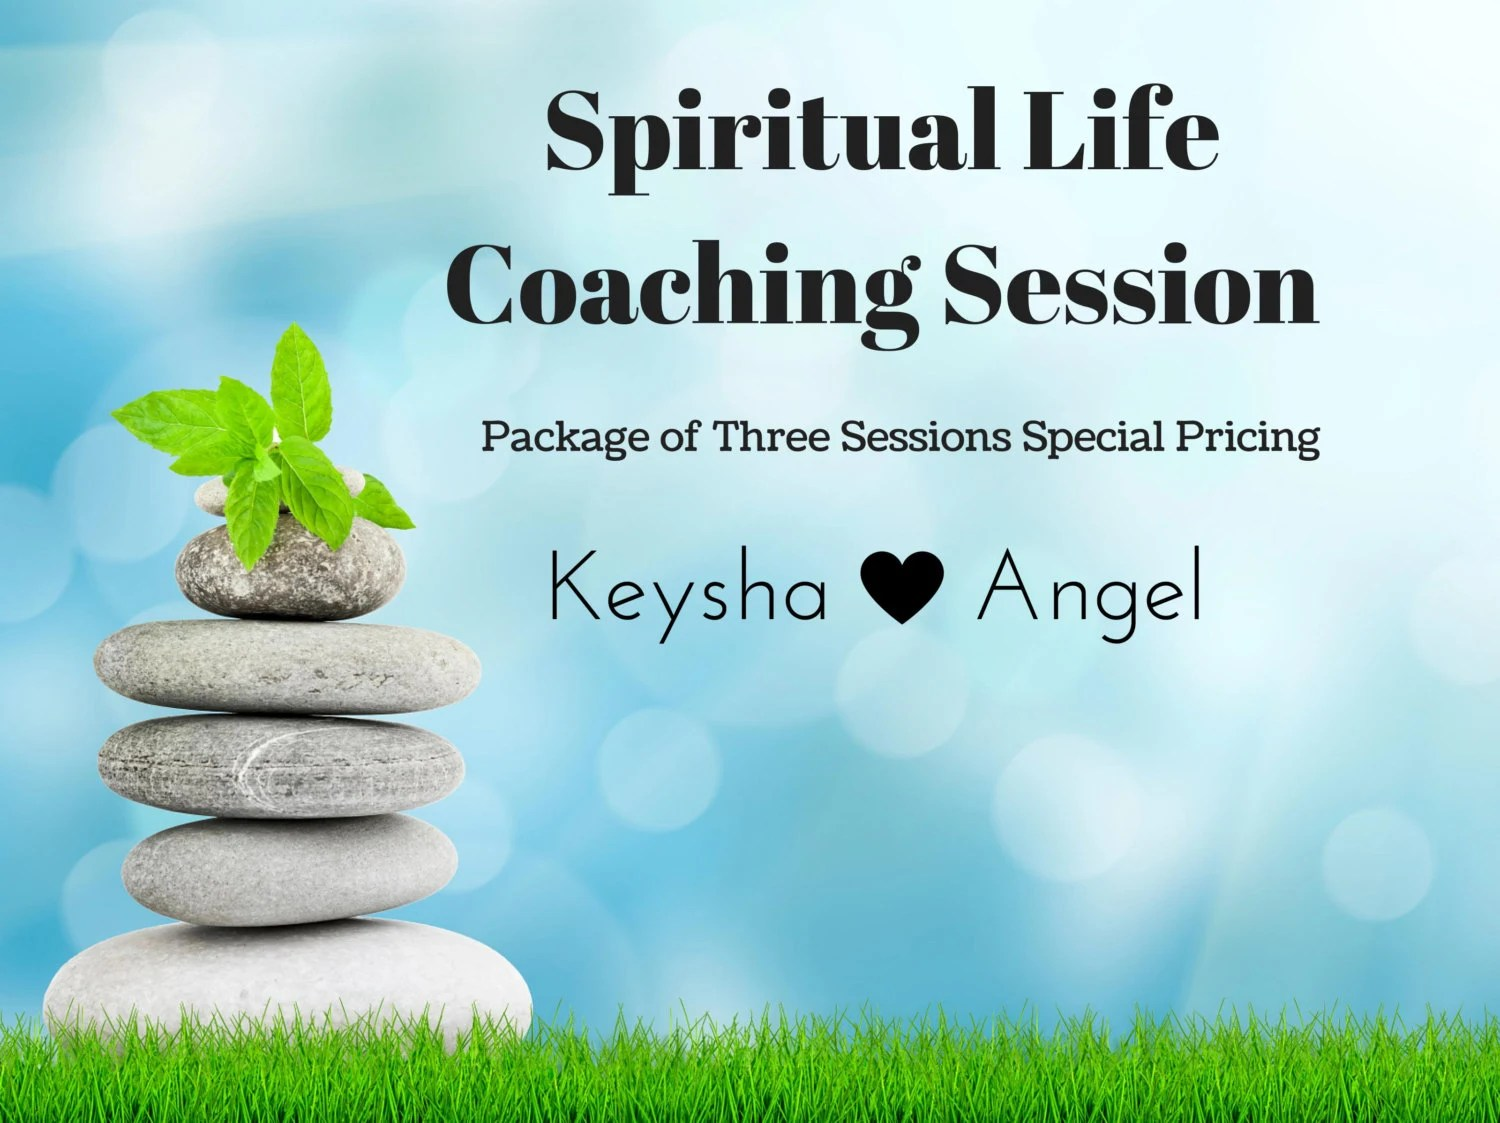 Spiritual Life Coaching Session Package Of Three By